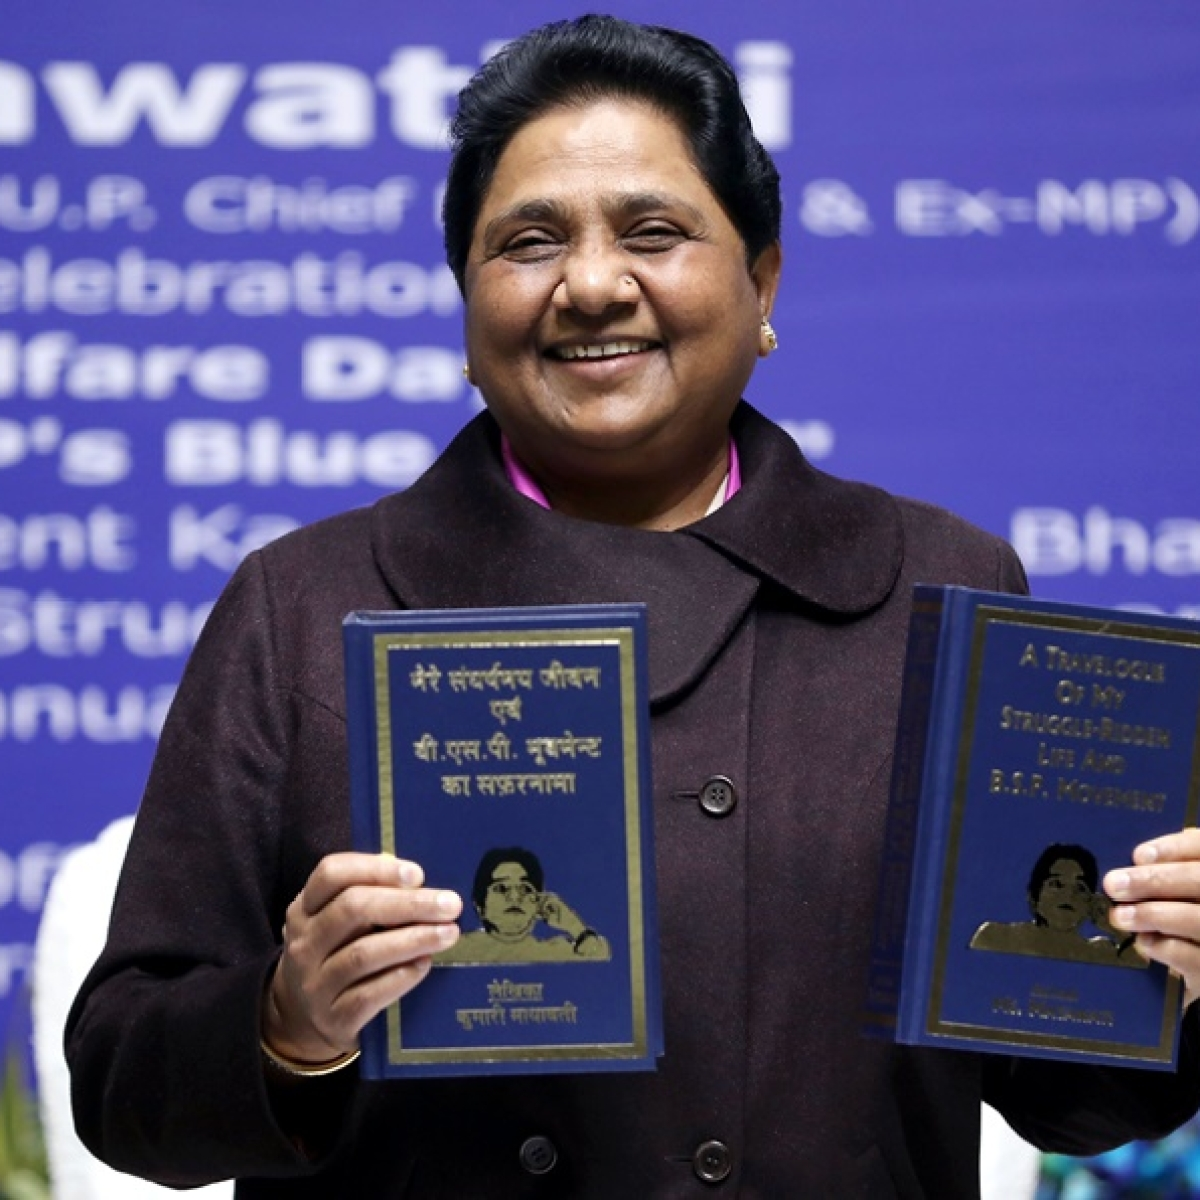 Coronavirus lockdown: Mayawati urges state govt to provide daily needs to poor at low prices